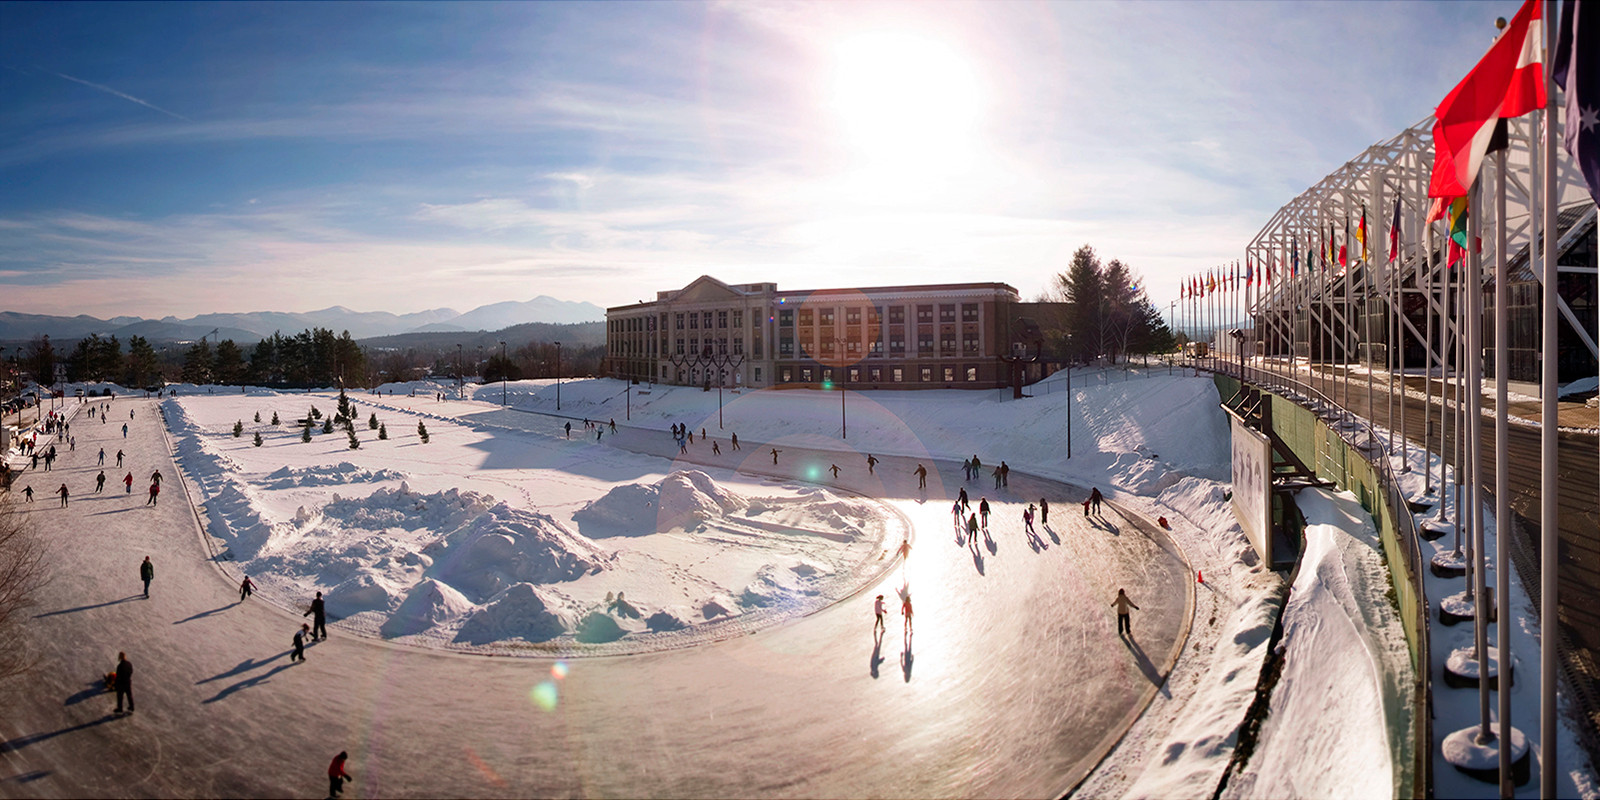 skating on the oval at Lake Placid